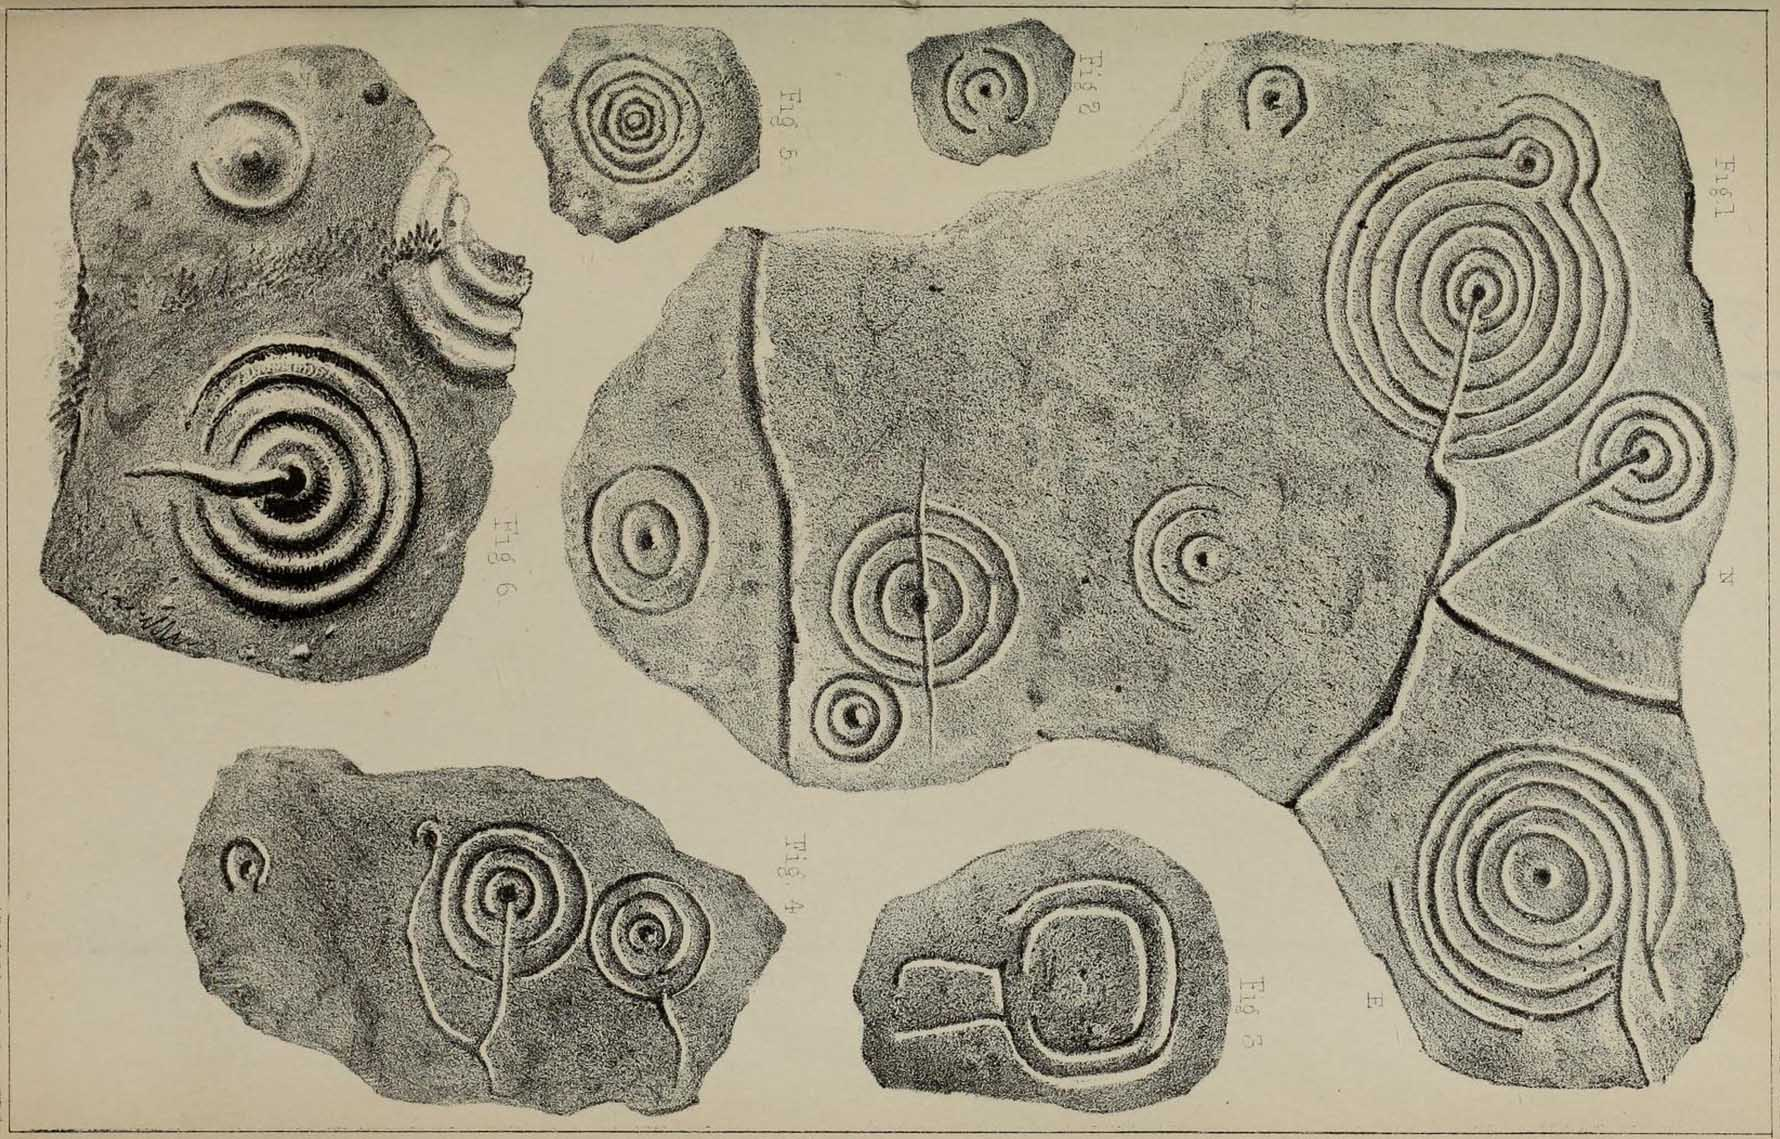 Cup-and-Ring stones